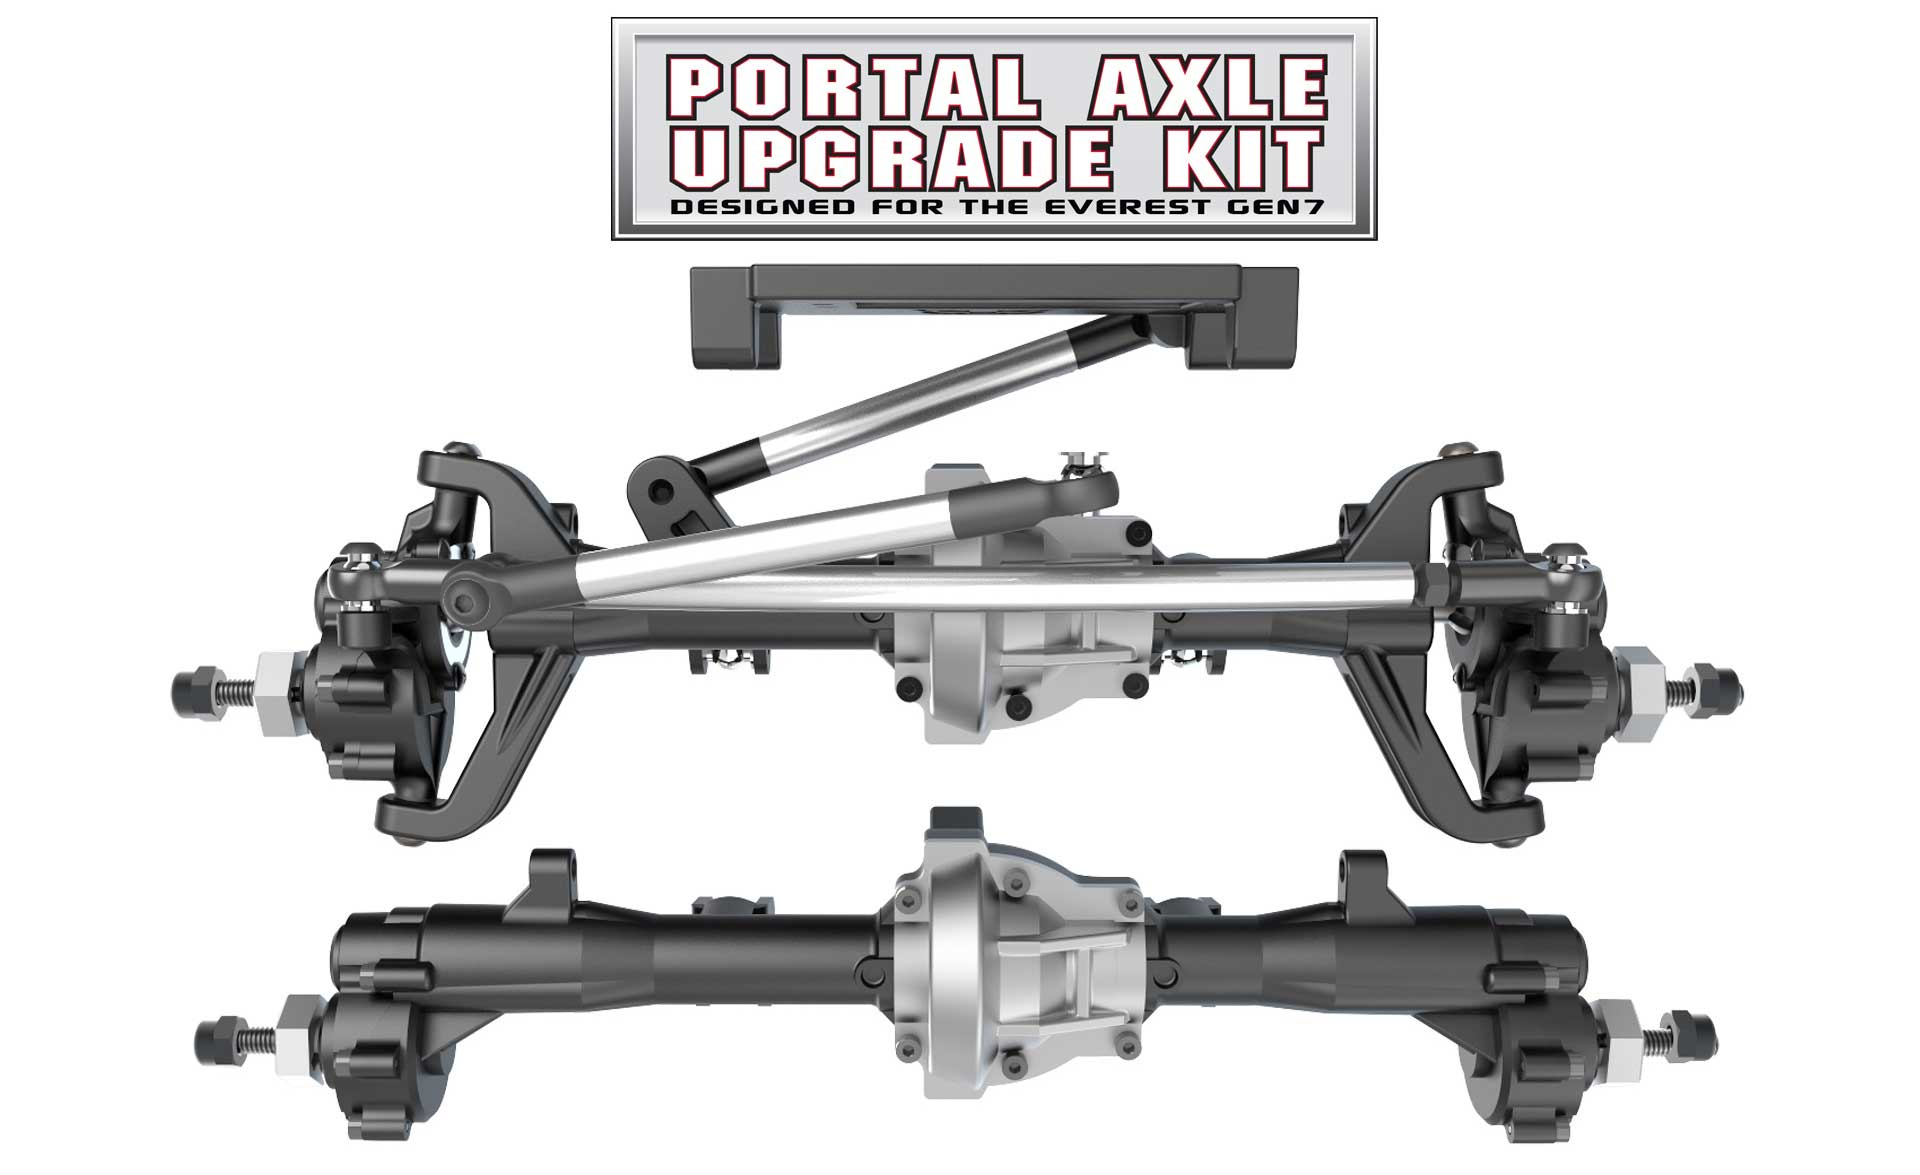 Redcat Racing Everest GEN7 Portal Axle Upgrade Kit - Large View